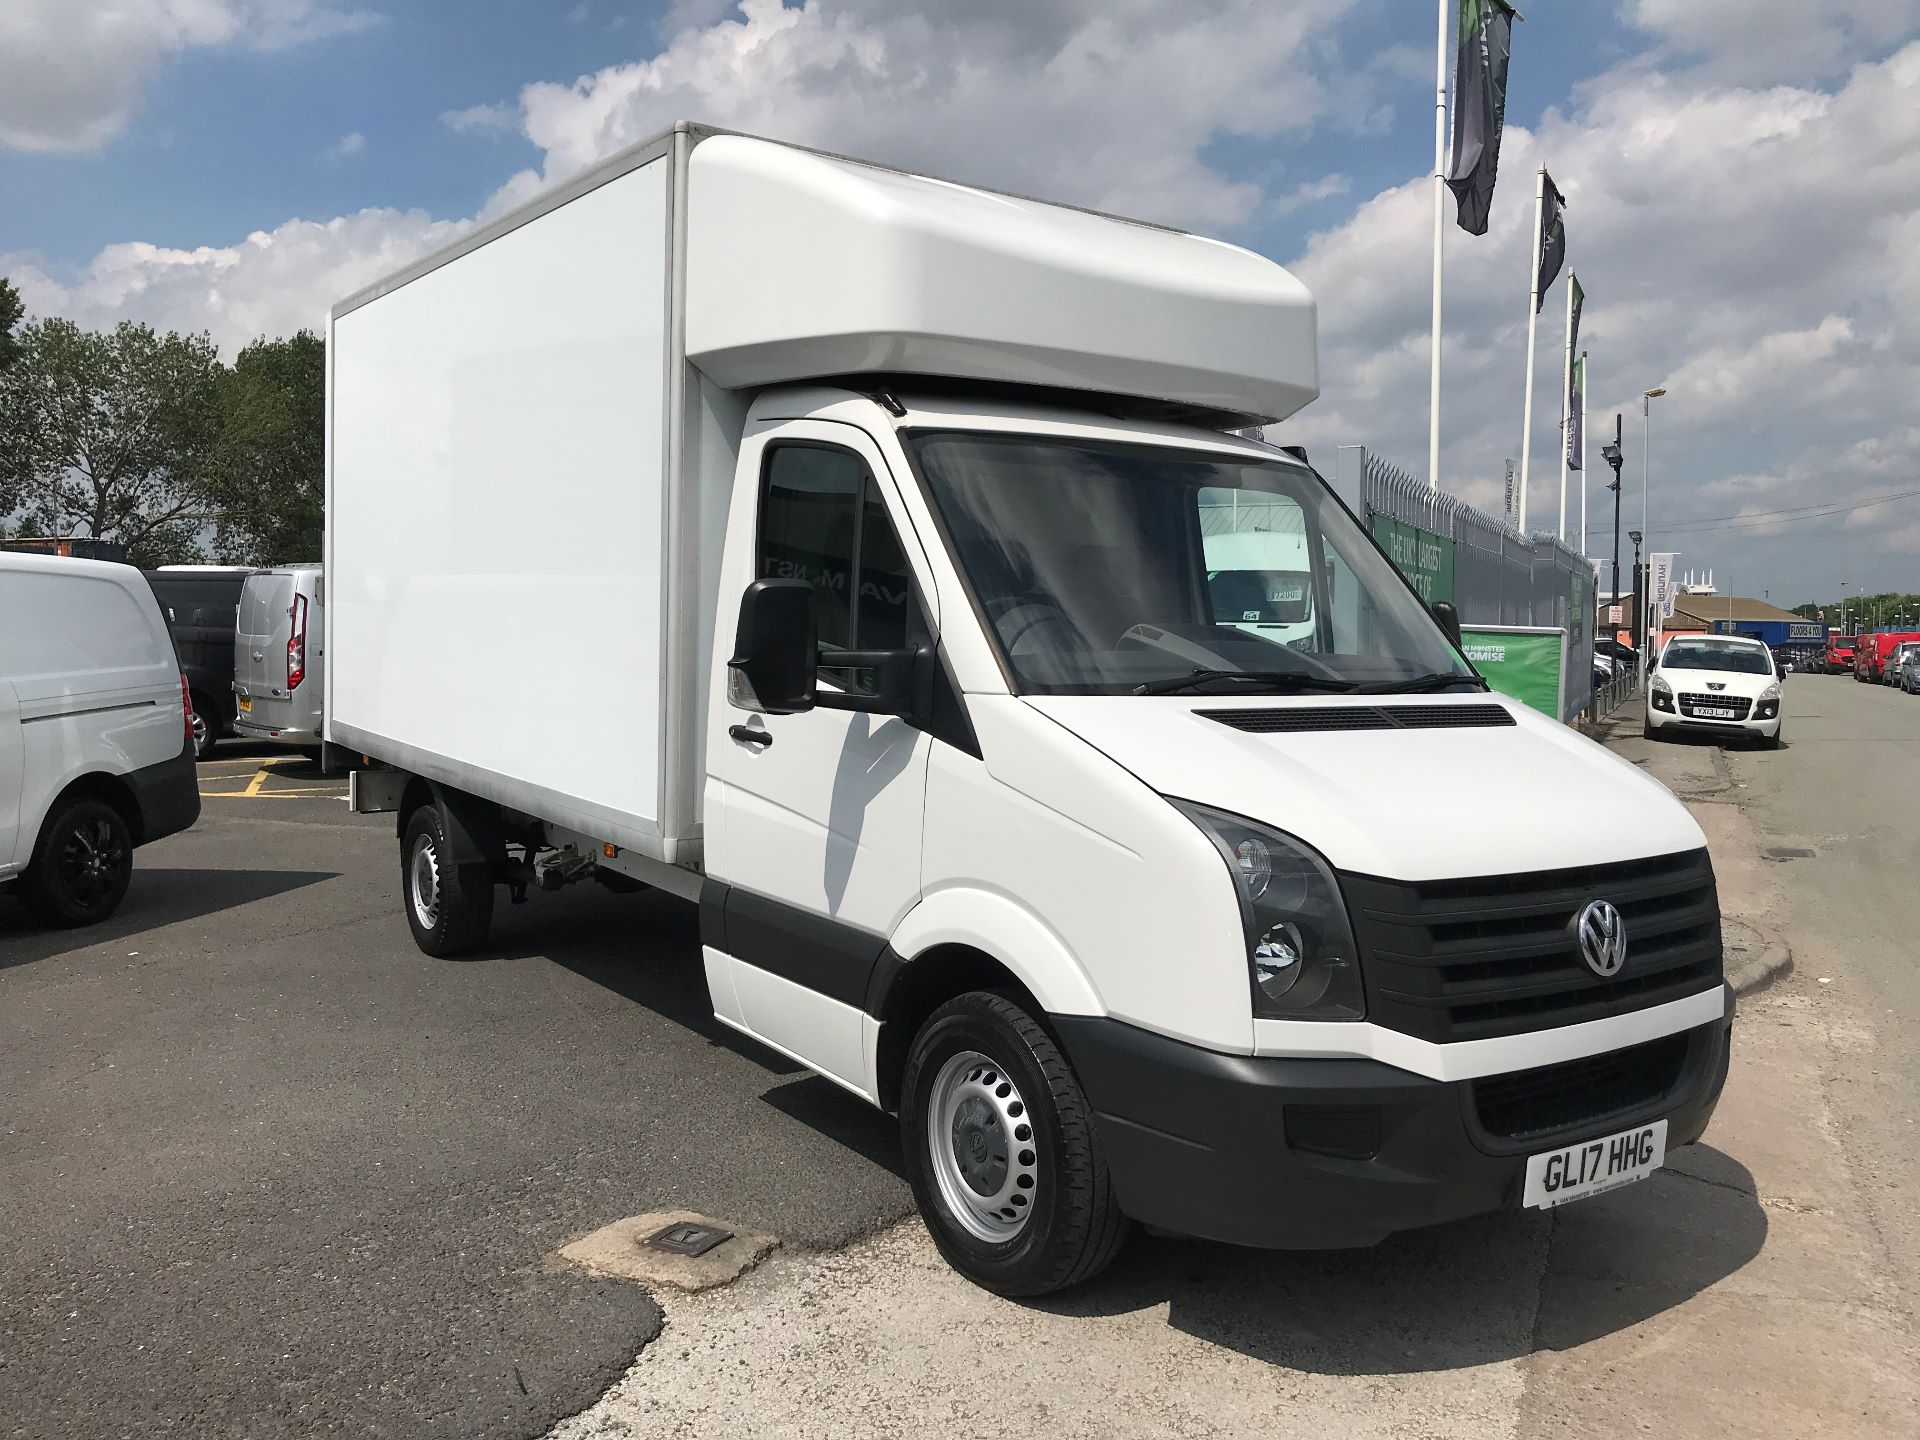 2017 Volkswagen Crafter CR35 13FT LUTON 2.0TDI BMT 140PS TAIL LIFT  (GL17HHG)